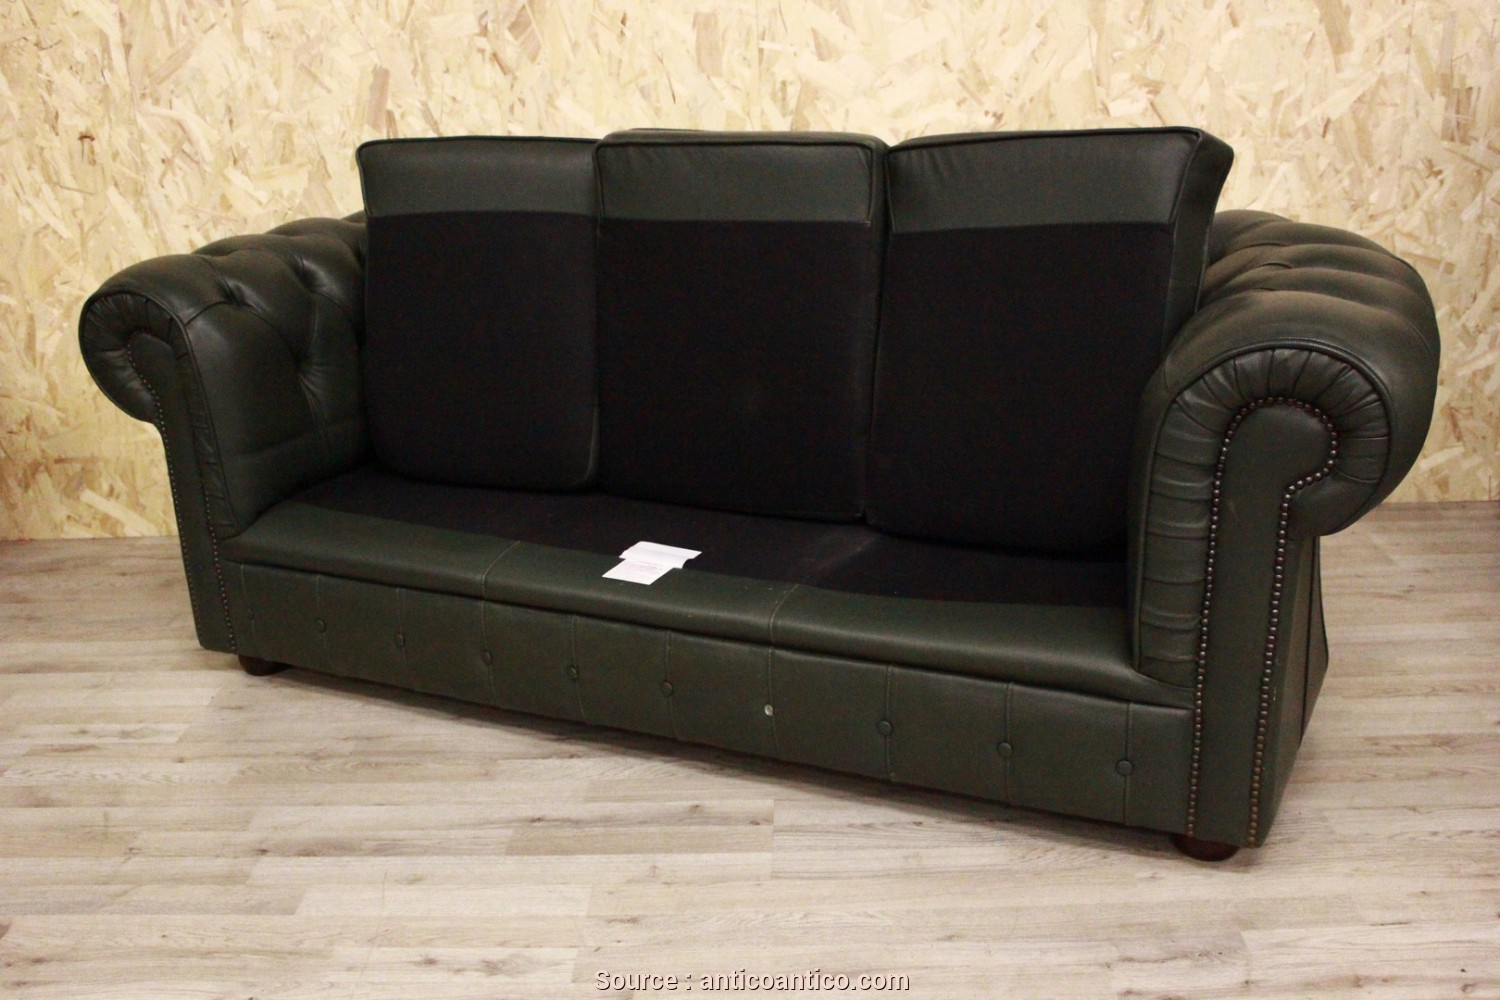 Divano Frau Pelle Vintage, Superiore 3 Seater Chesterfield Sofa In Original Green Leather Made In The